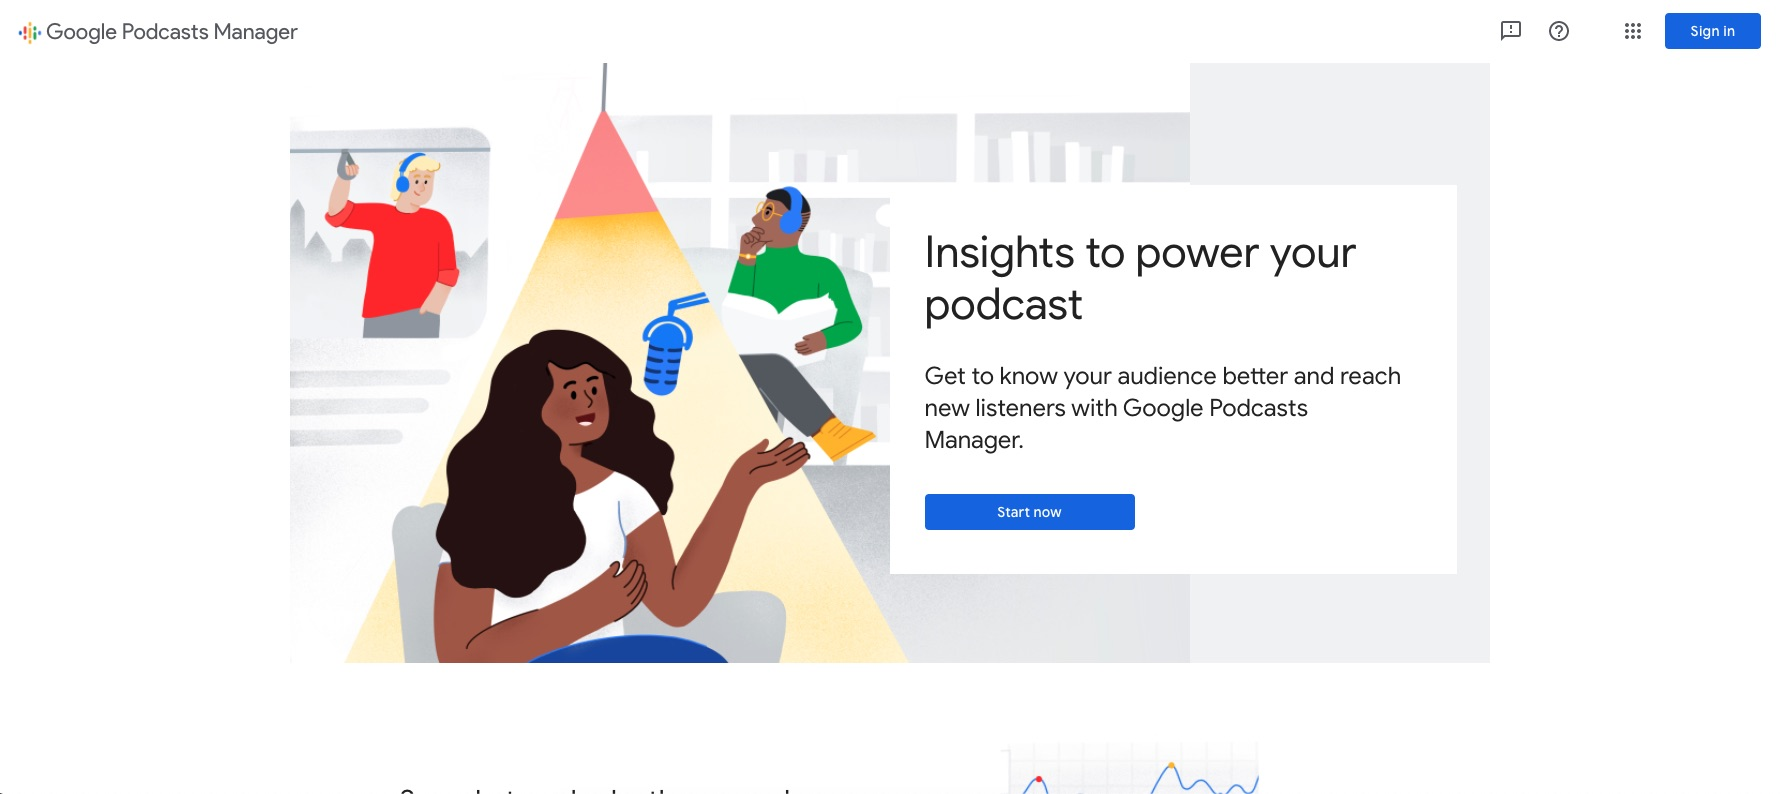 Google Podcasts Manager Analytics